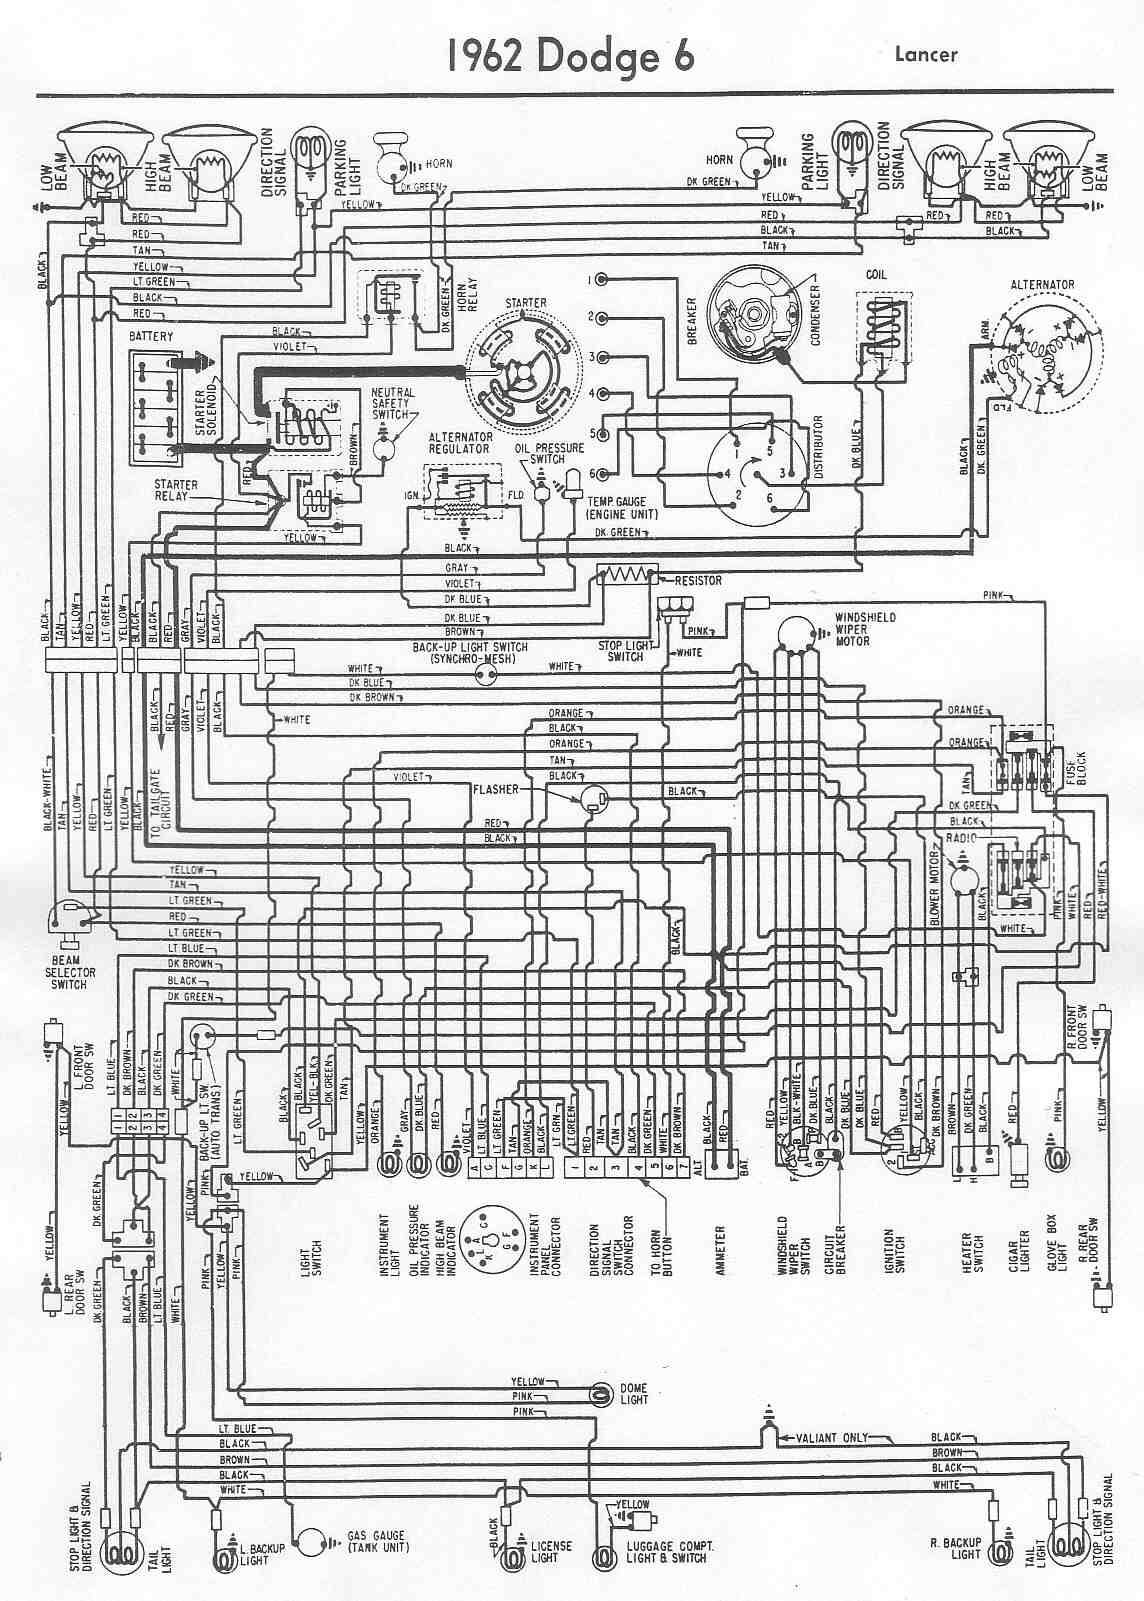 87 dodge d150 wiring diagram free download wiring diagram schematic dodge car manuals wiring diagrams pdf fault codes rh automotive manuals net publicscrutiny Image collections